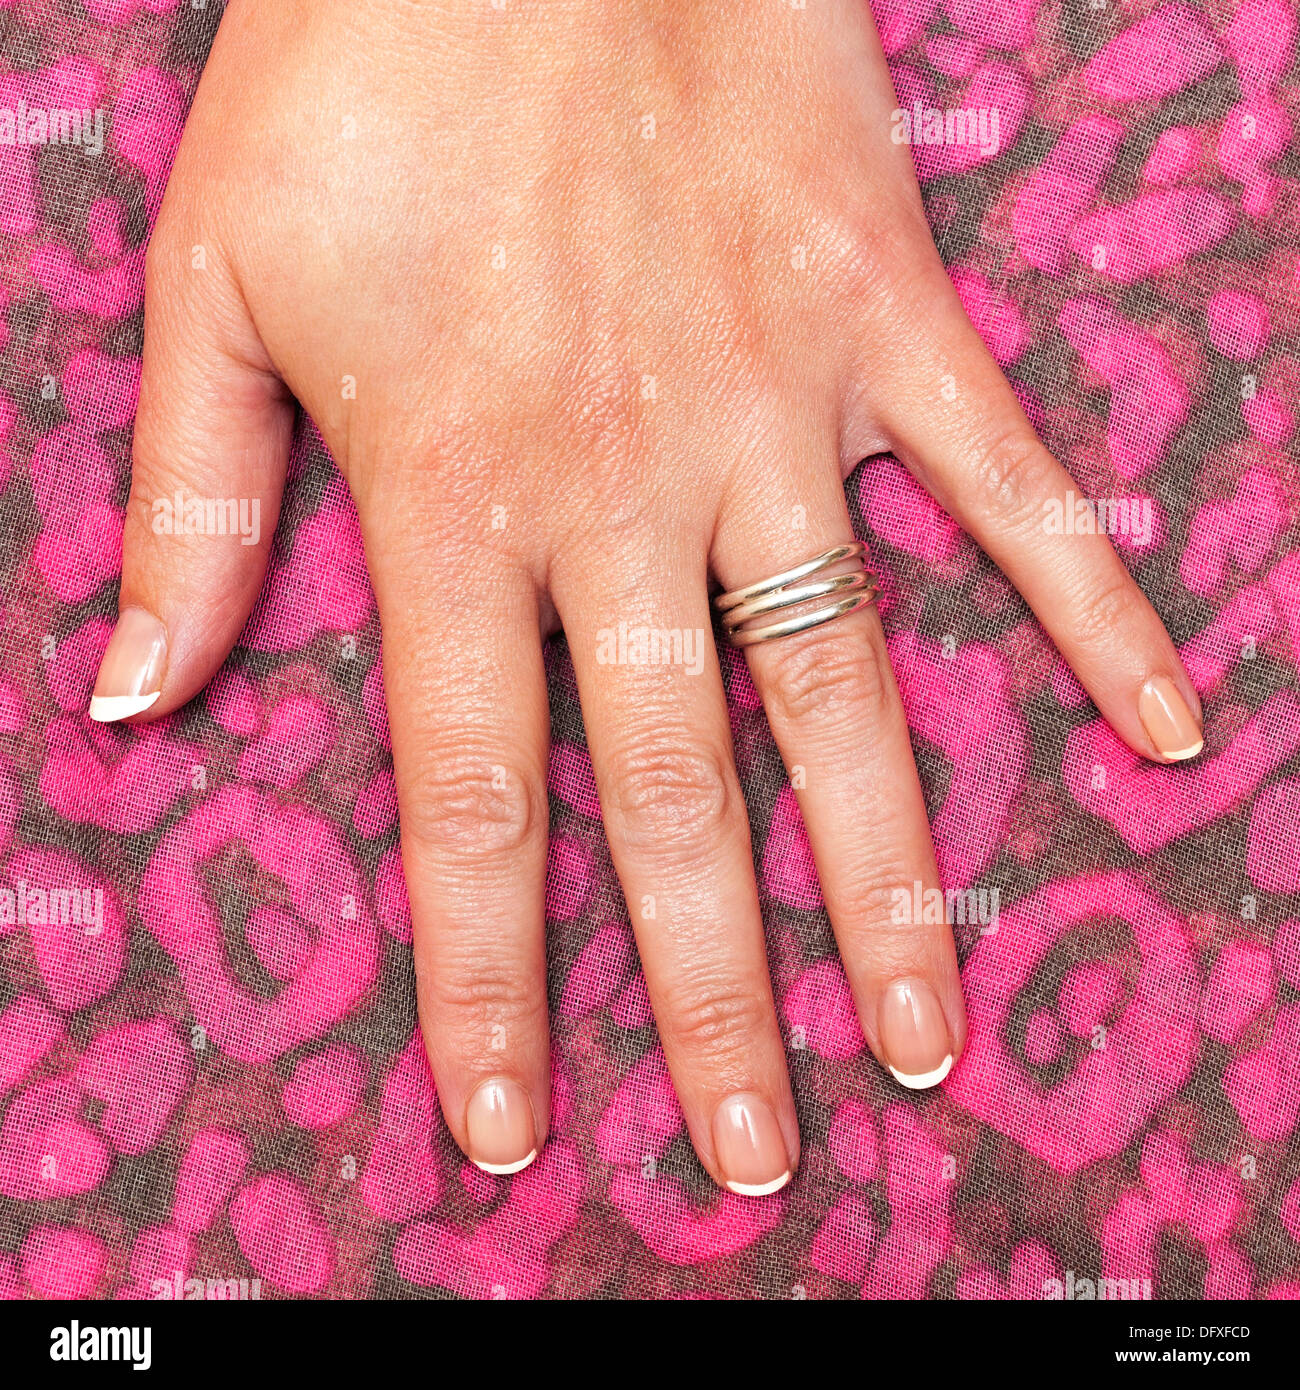 A close up of a womans hand with french polished nails - Stock Image